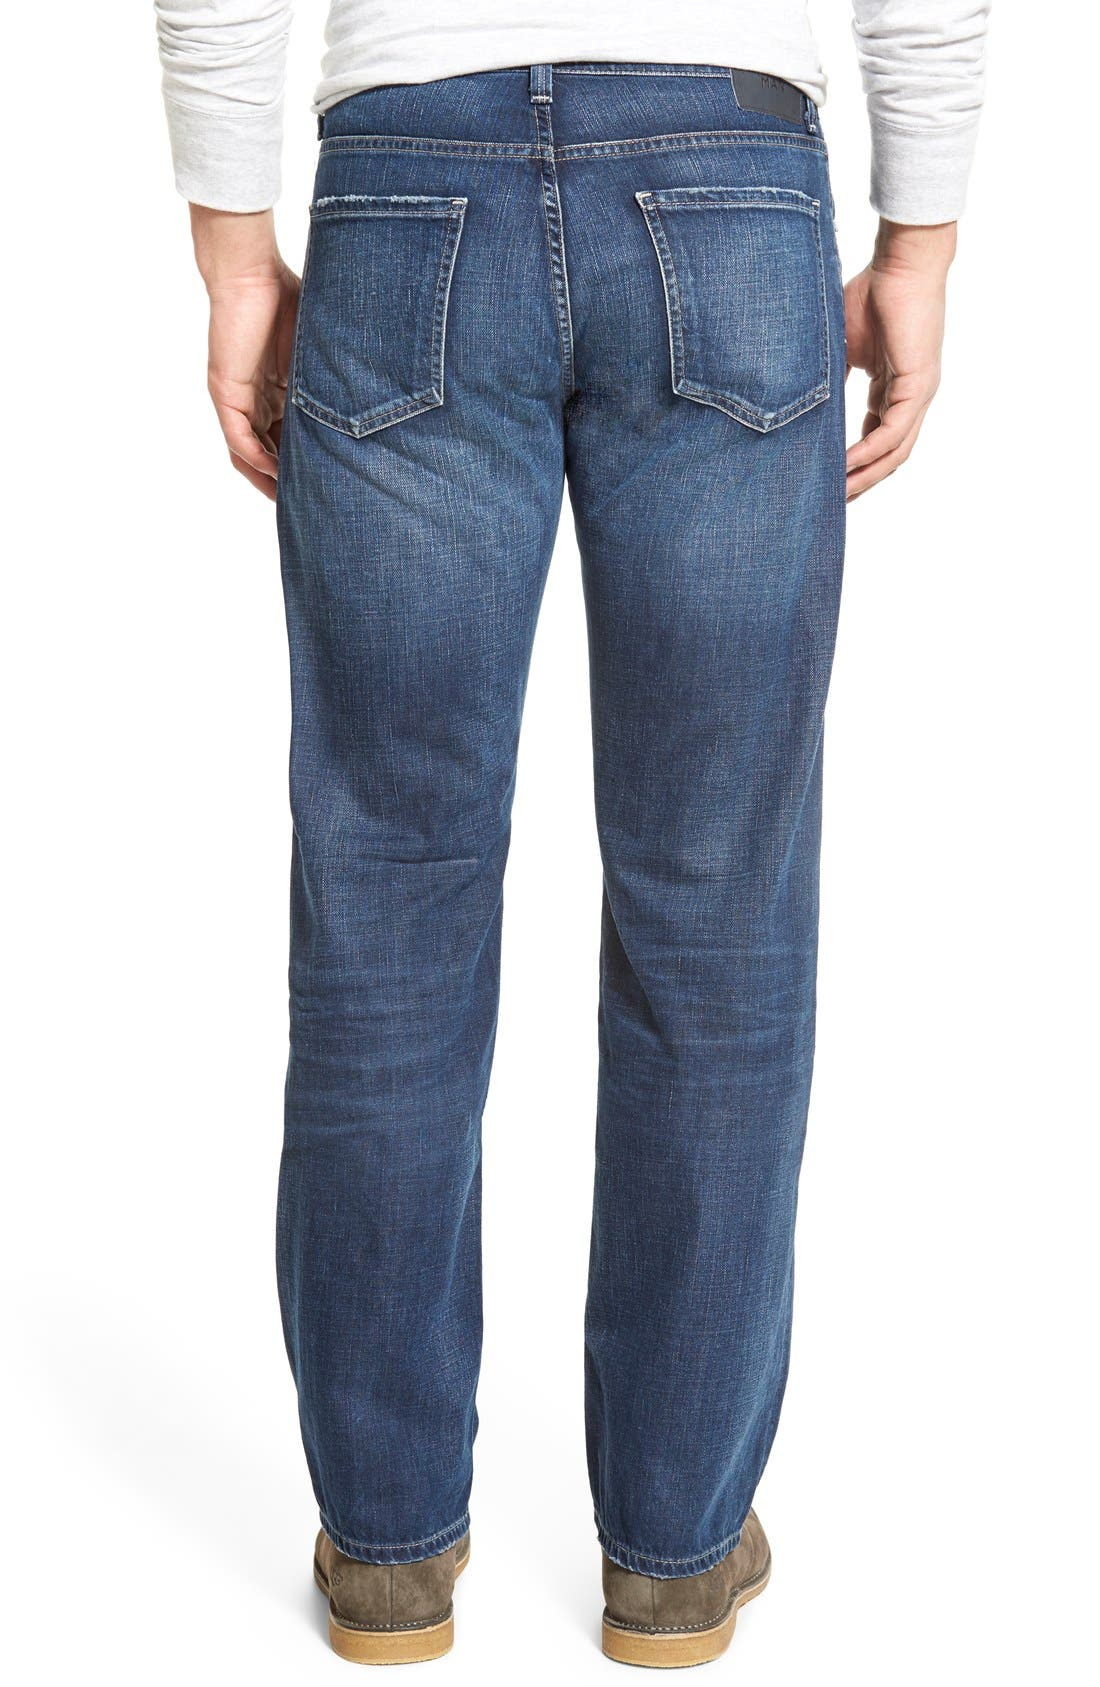 'Evans' Relaxed Fit Jeans,                             Alternate thumbnail 2, color,                             DERBY